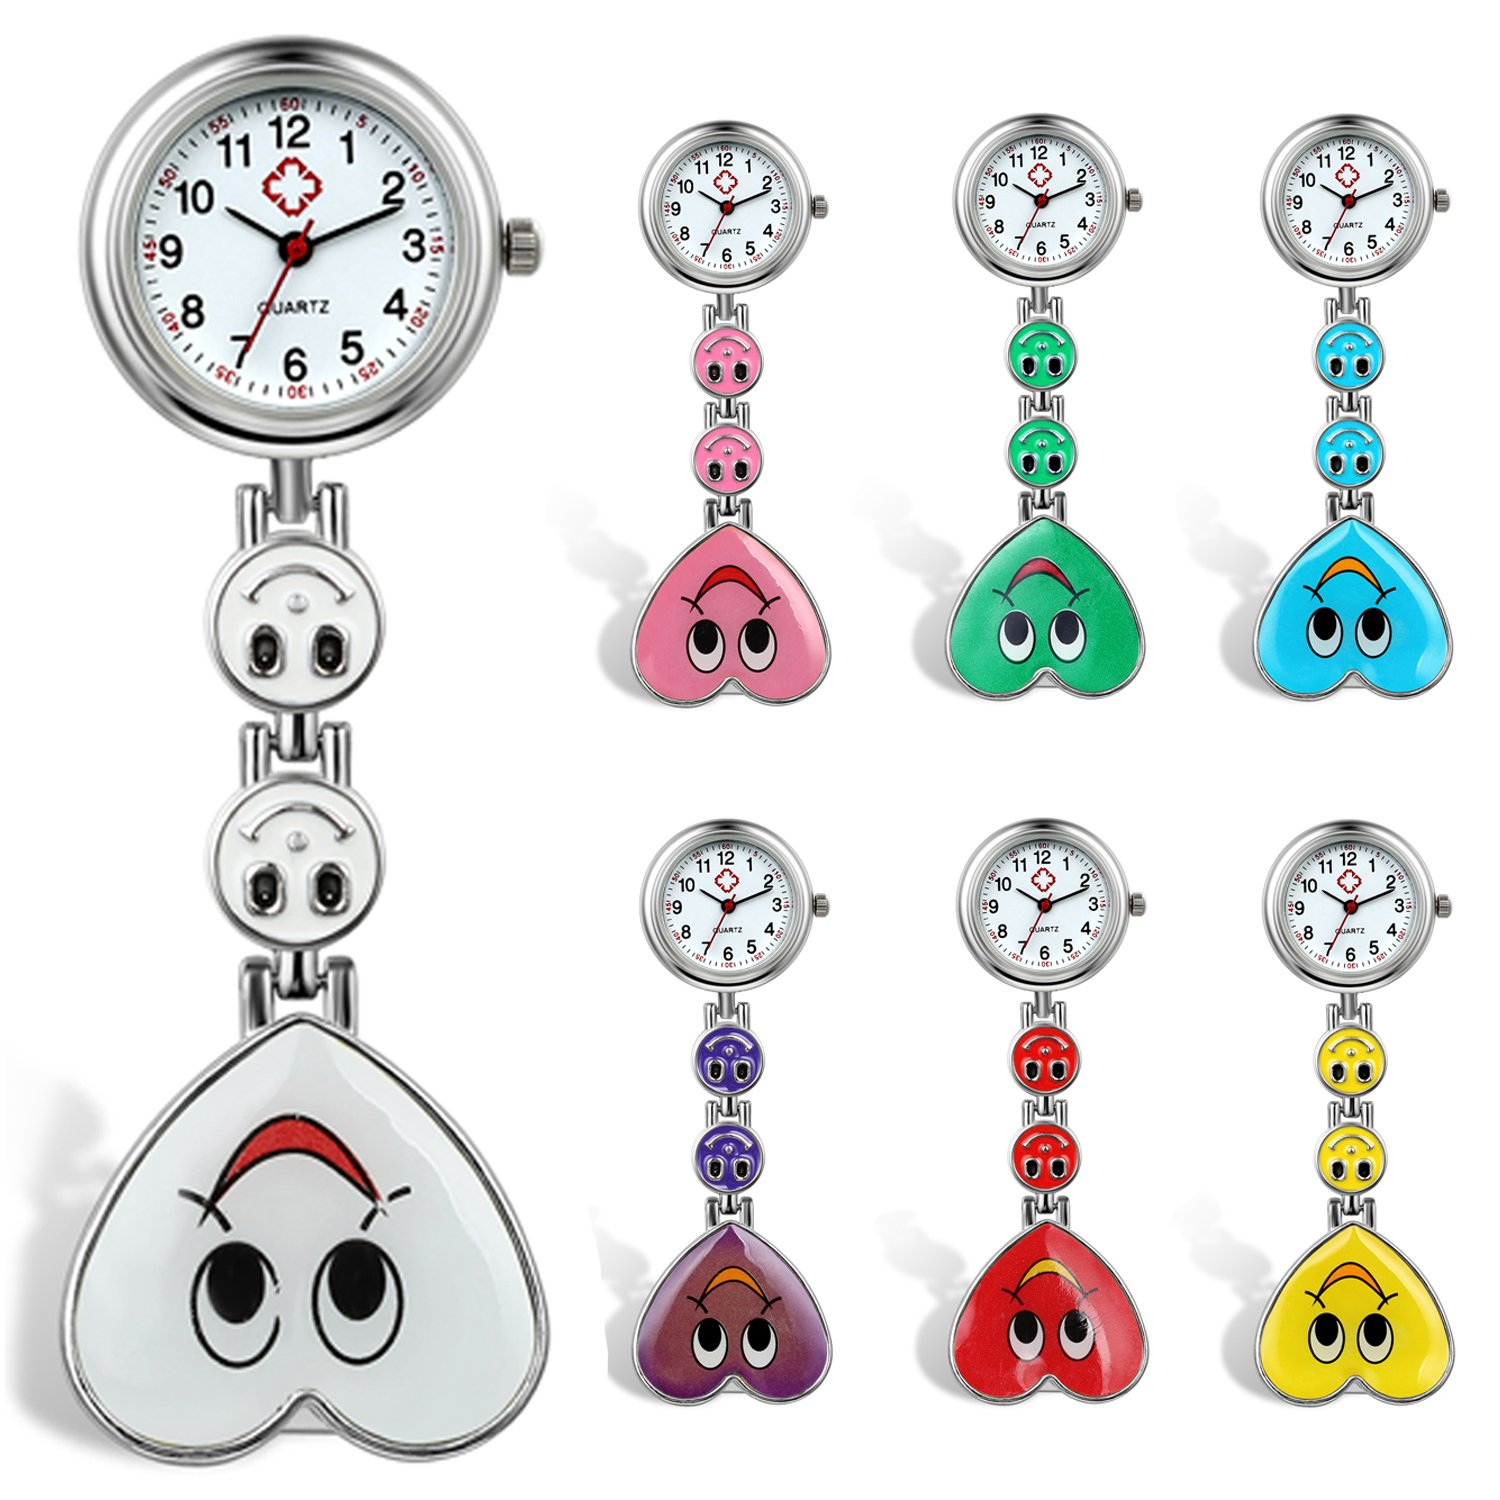 Womens Nurses Watch 7Pcs Cute Candy Color Smile Heart Face Clip-on Medical Doctors Lapel Clasp Pocket Watch by Lancardo